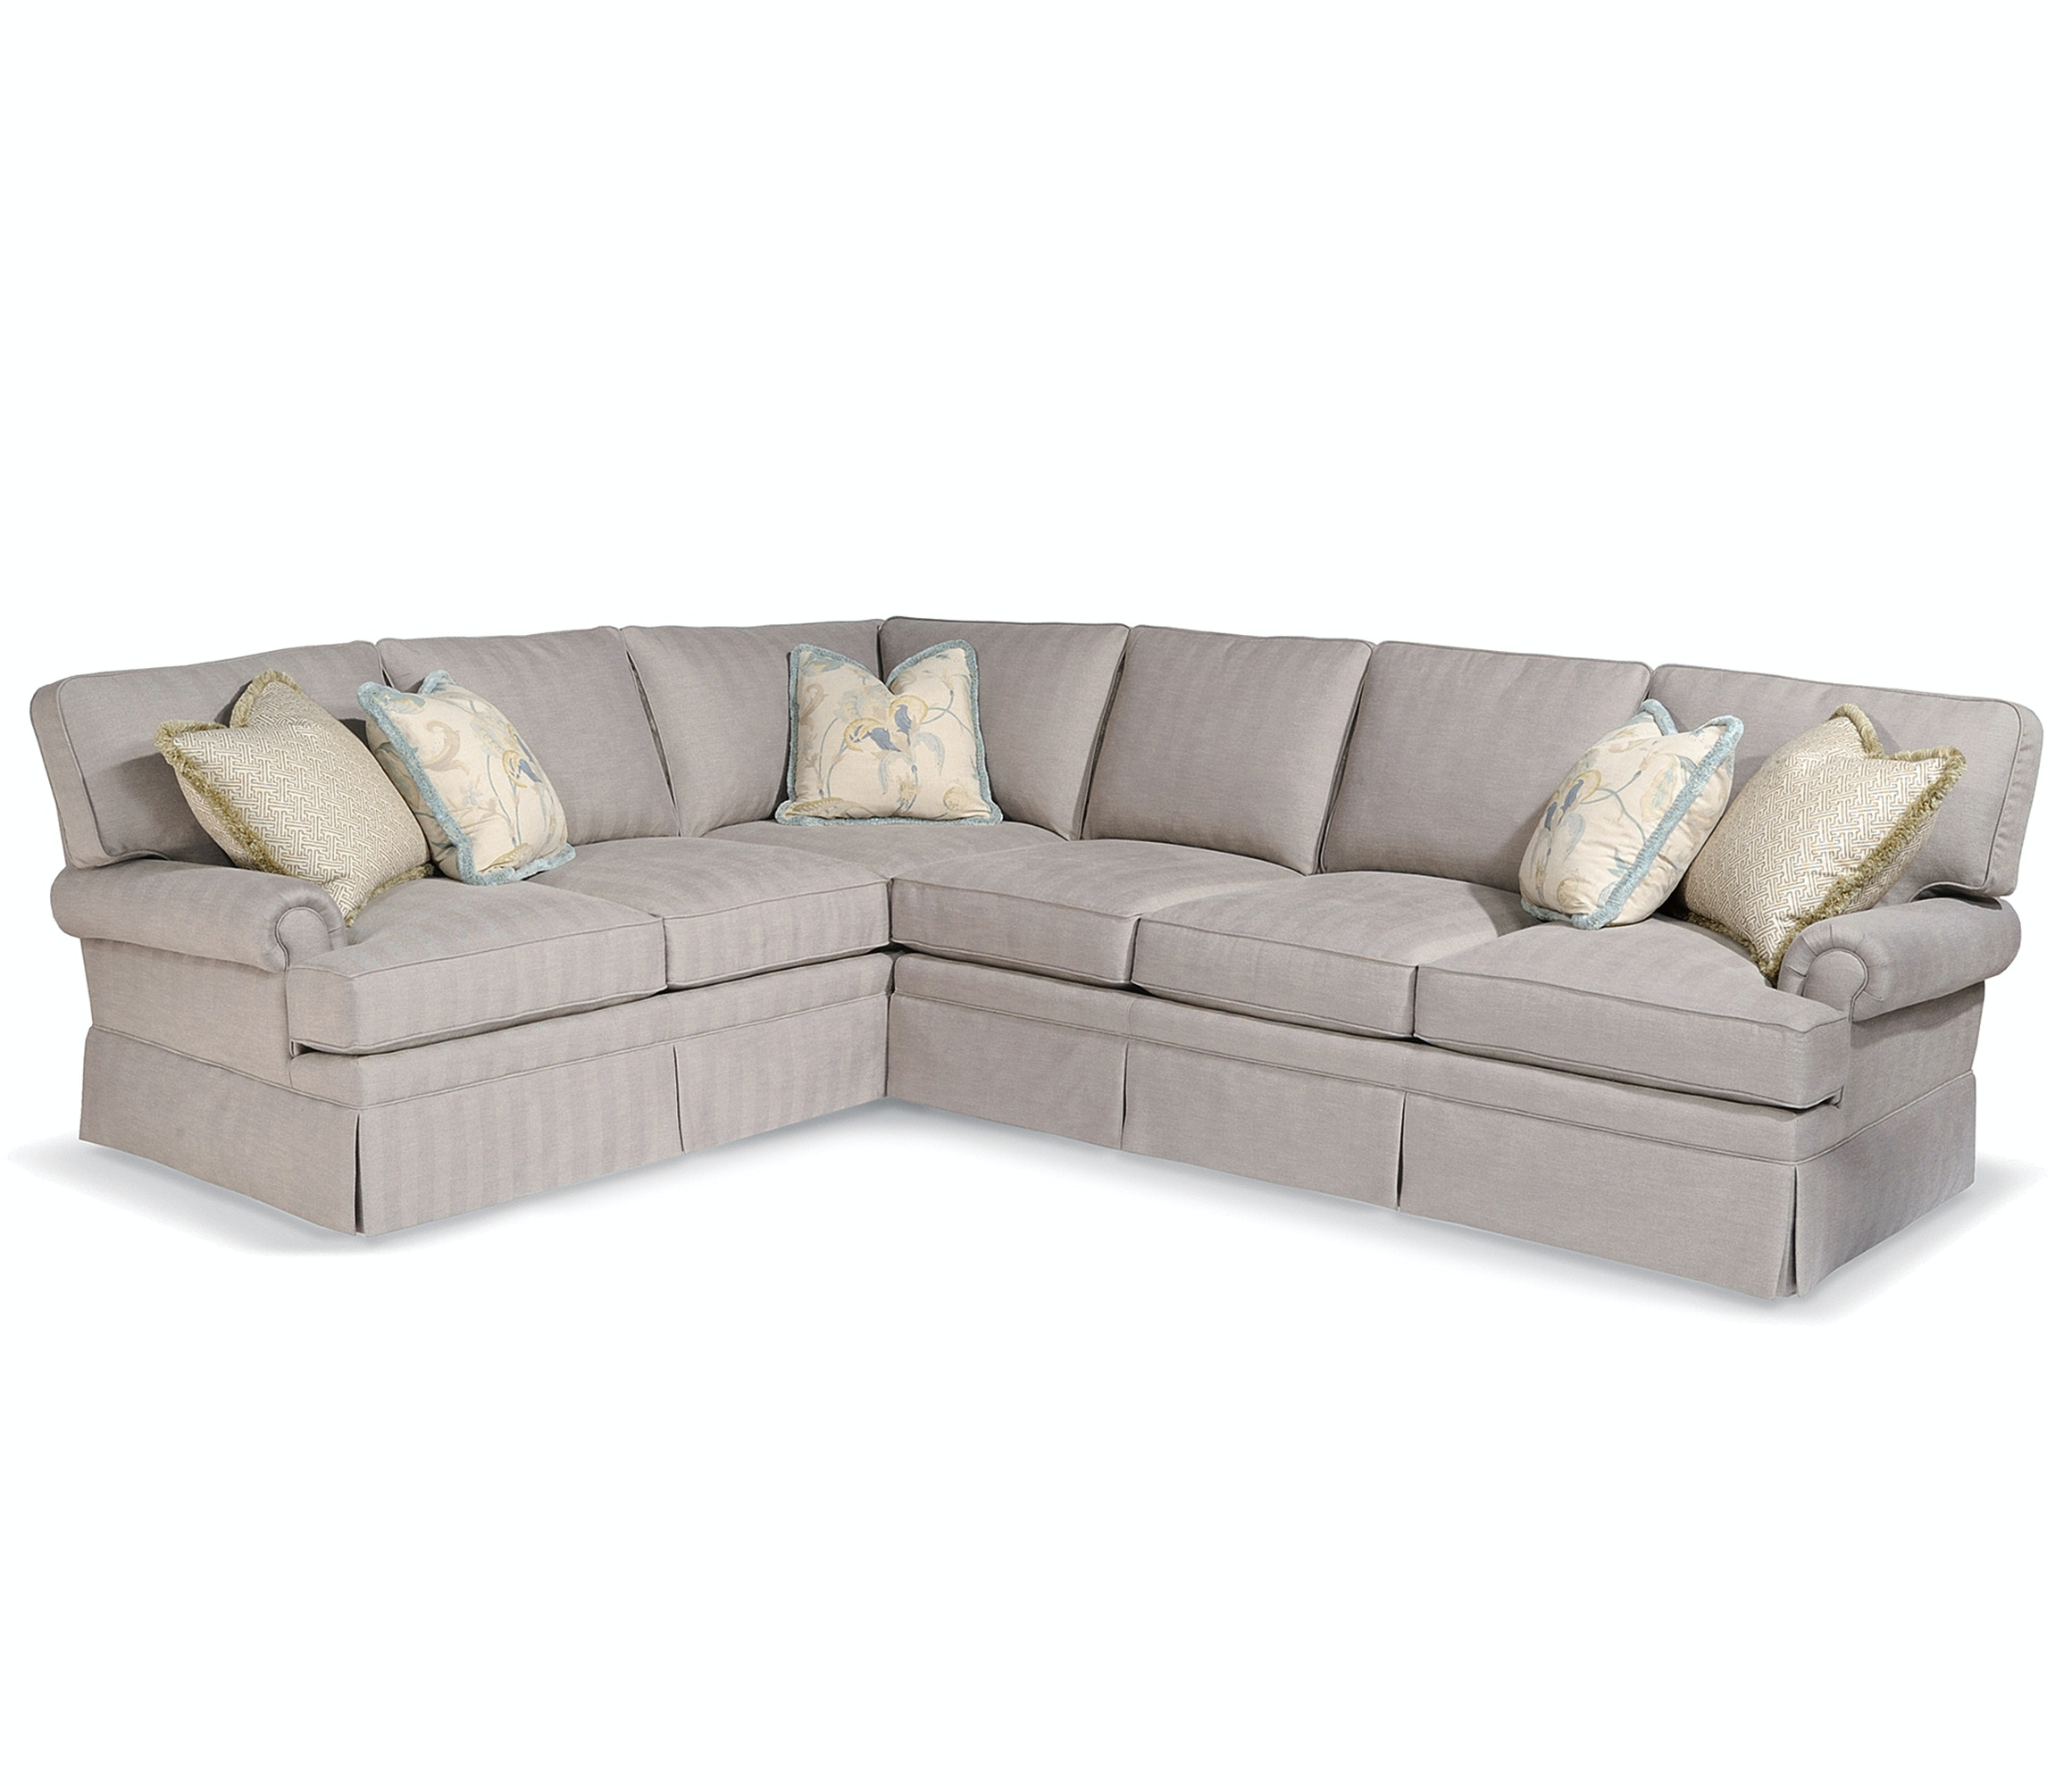 Taylor King Furniture Living Room Quincy Sectional 8312SK